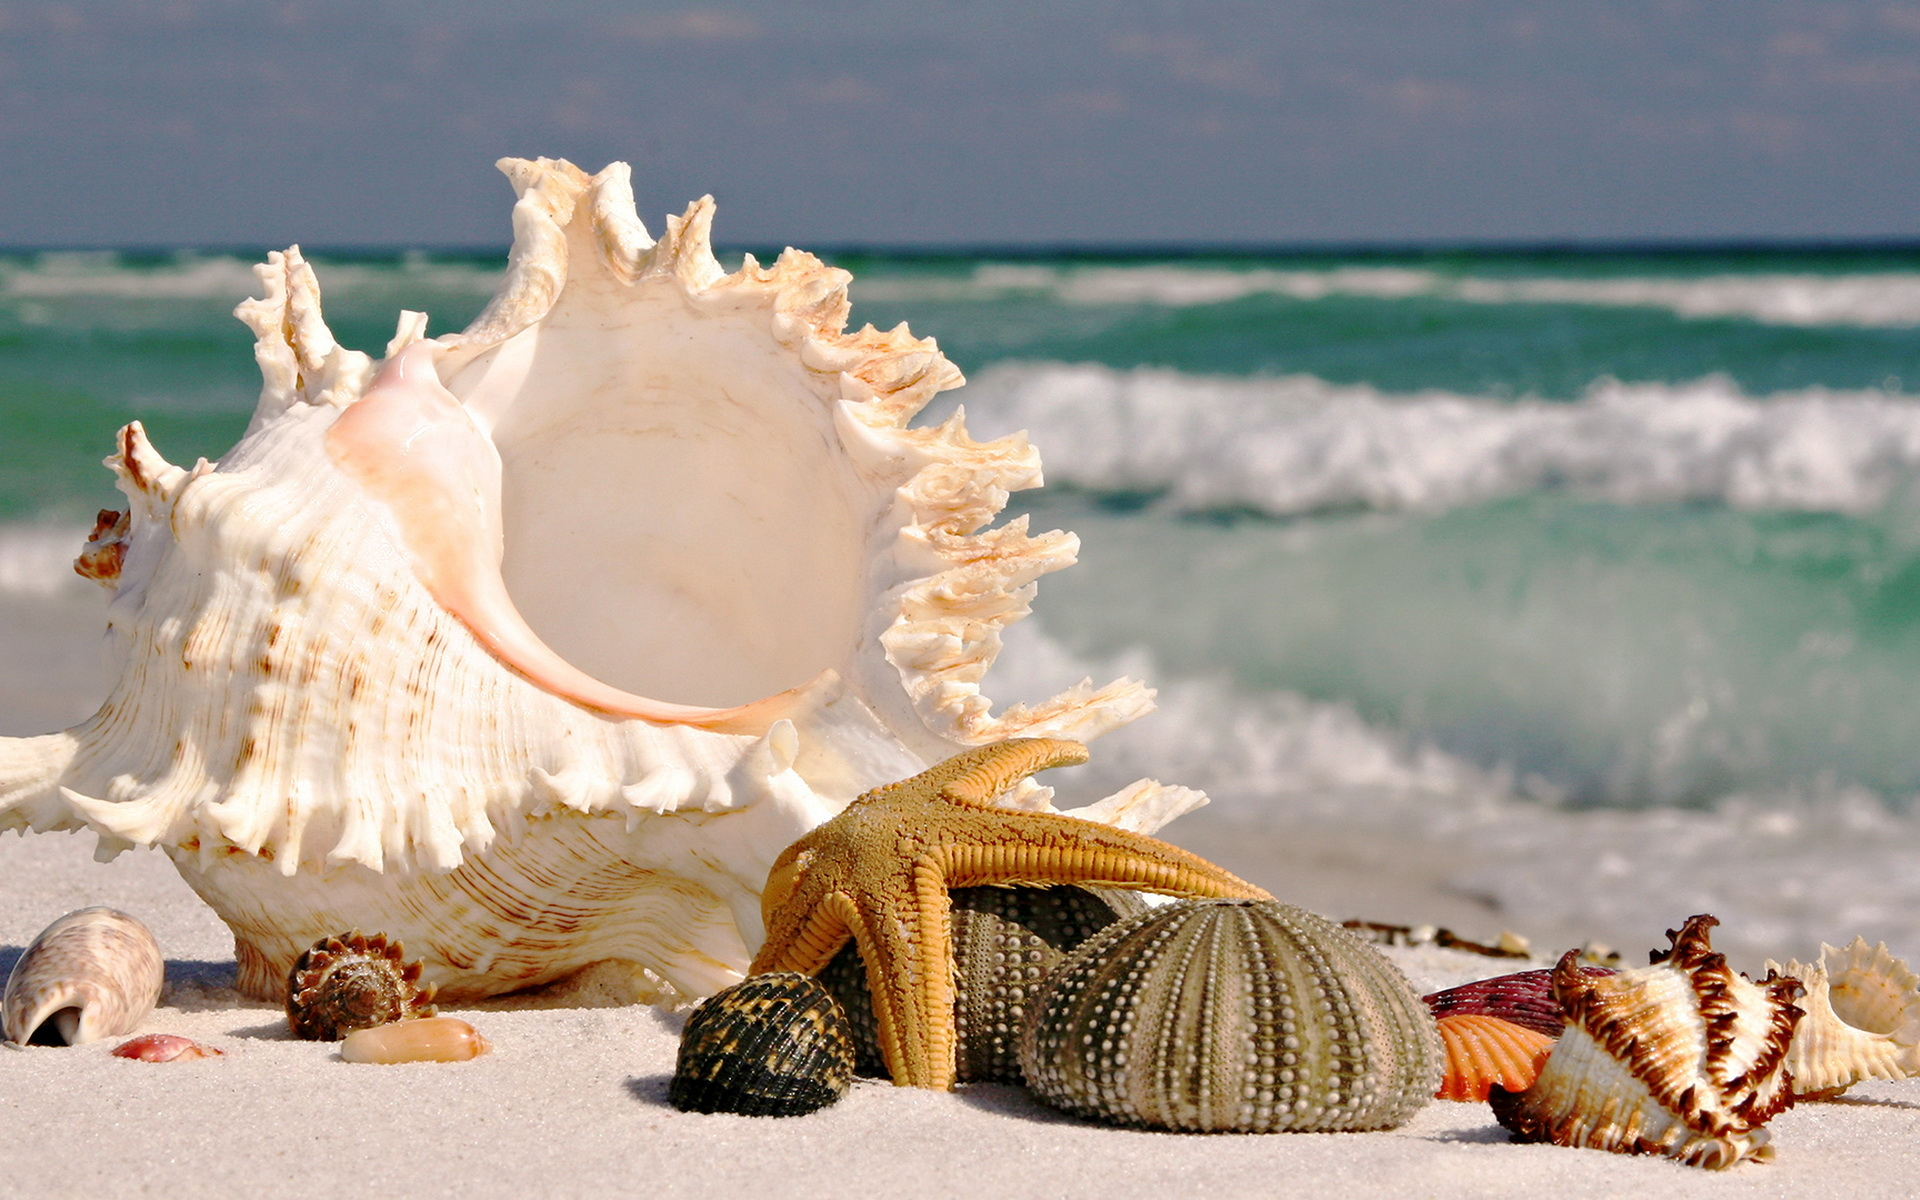 Beautiful Shell Beach Wallpaper Themes 18645 Wallpaper 1920x1200